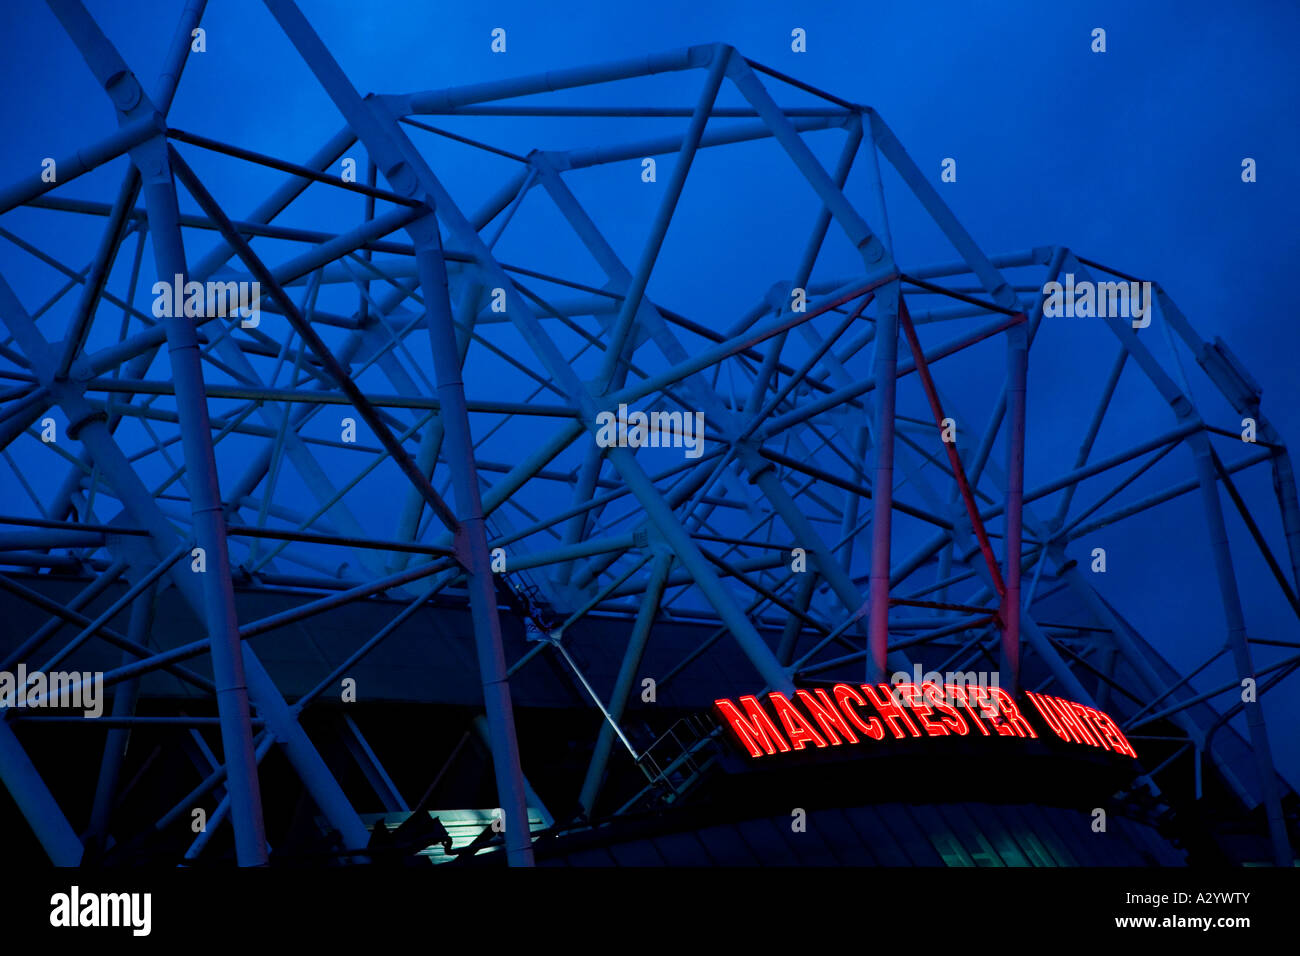 Old Trafford Soccer Stadium Manchester United Football Club home ground Manchester Lancashire England UK GB - Stock Image